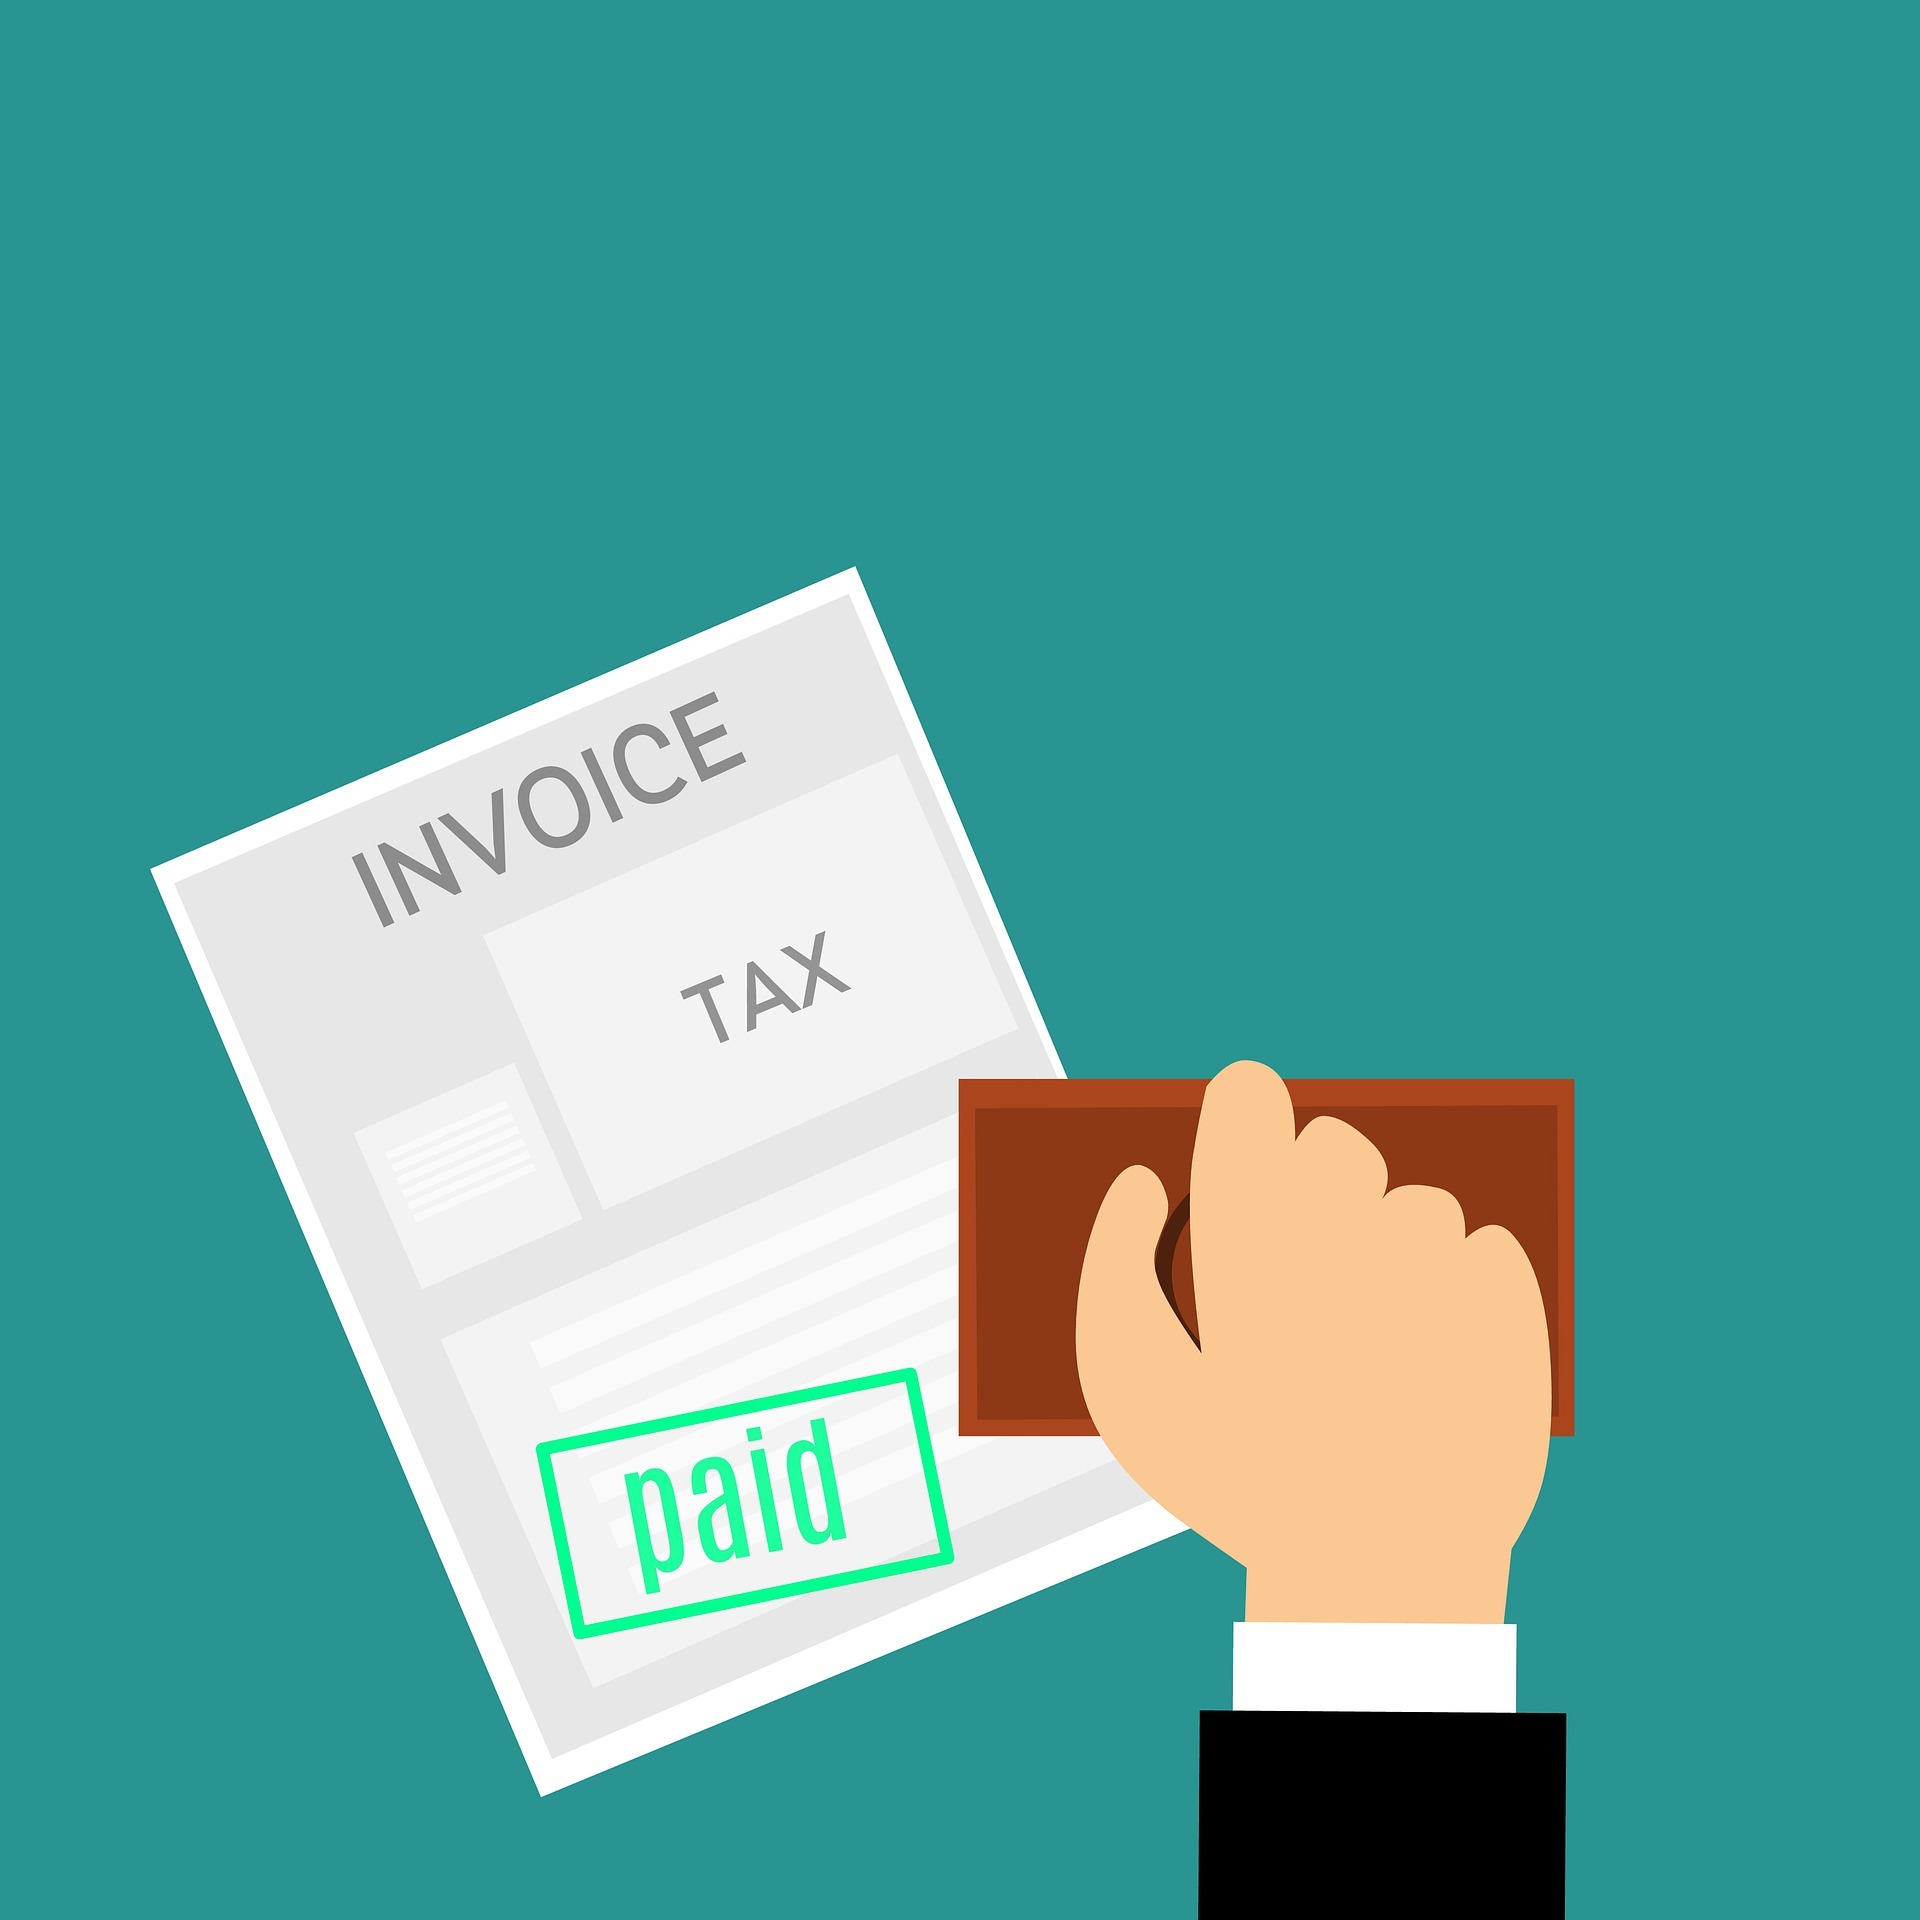 How to Maximise Your Tax Efficiency – 15 Top Tax Tips for 2019/20